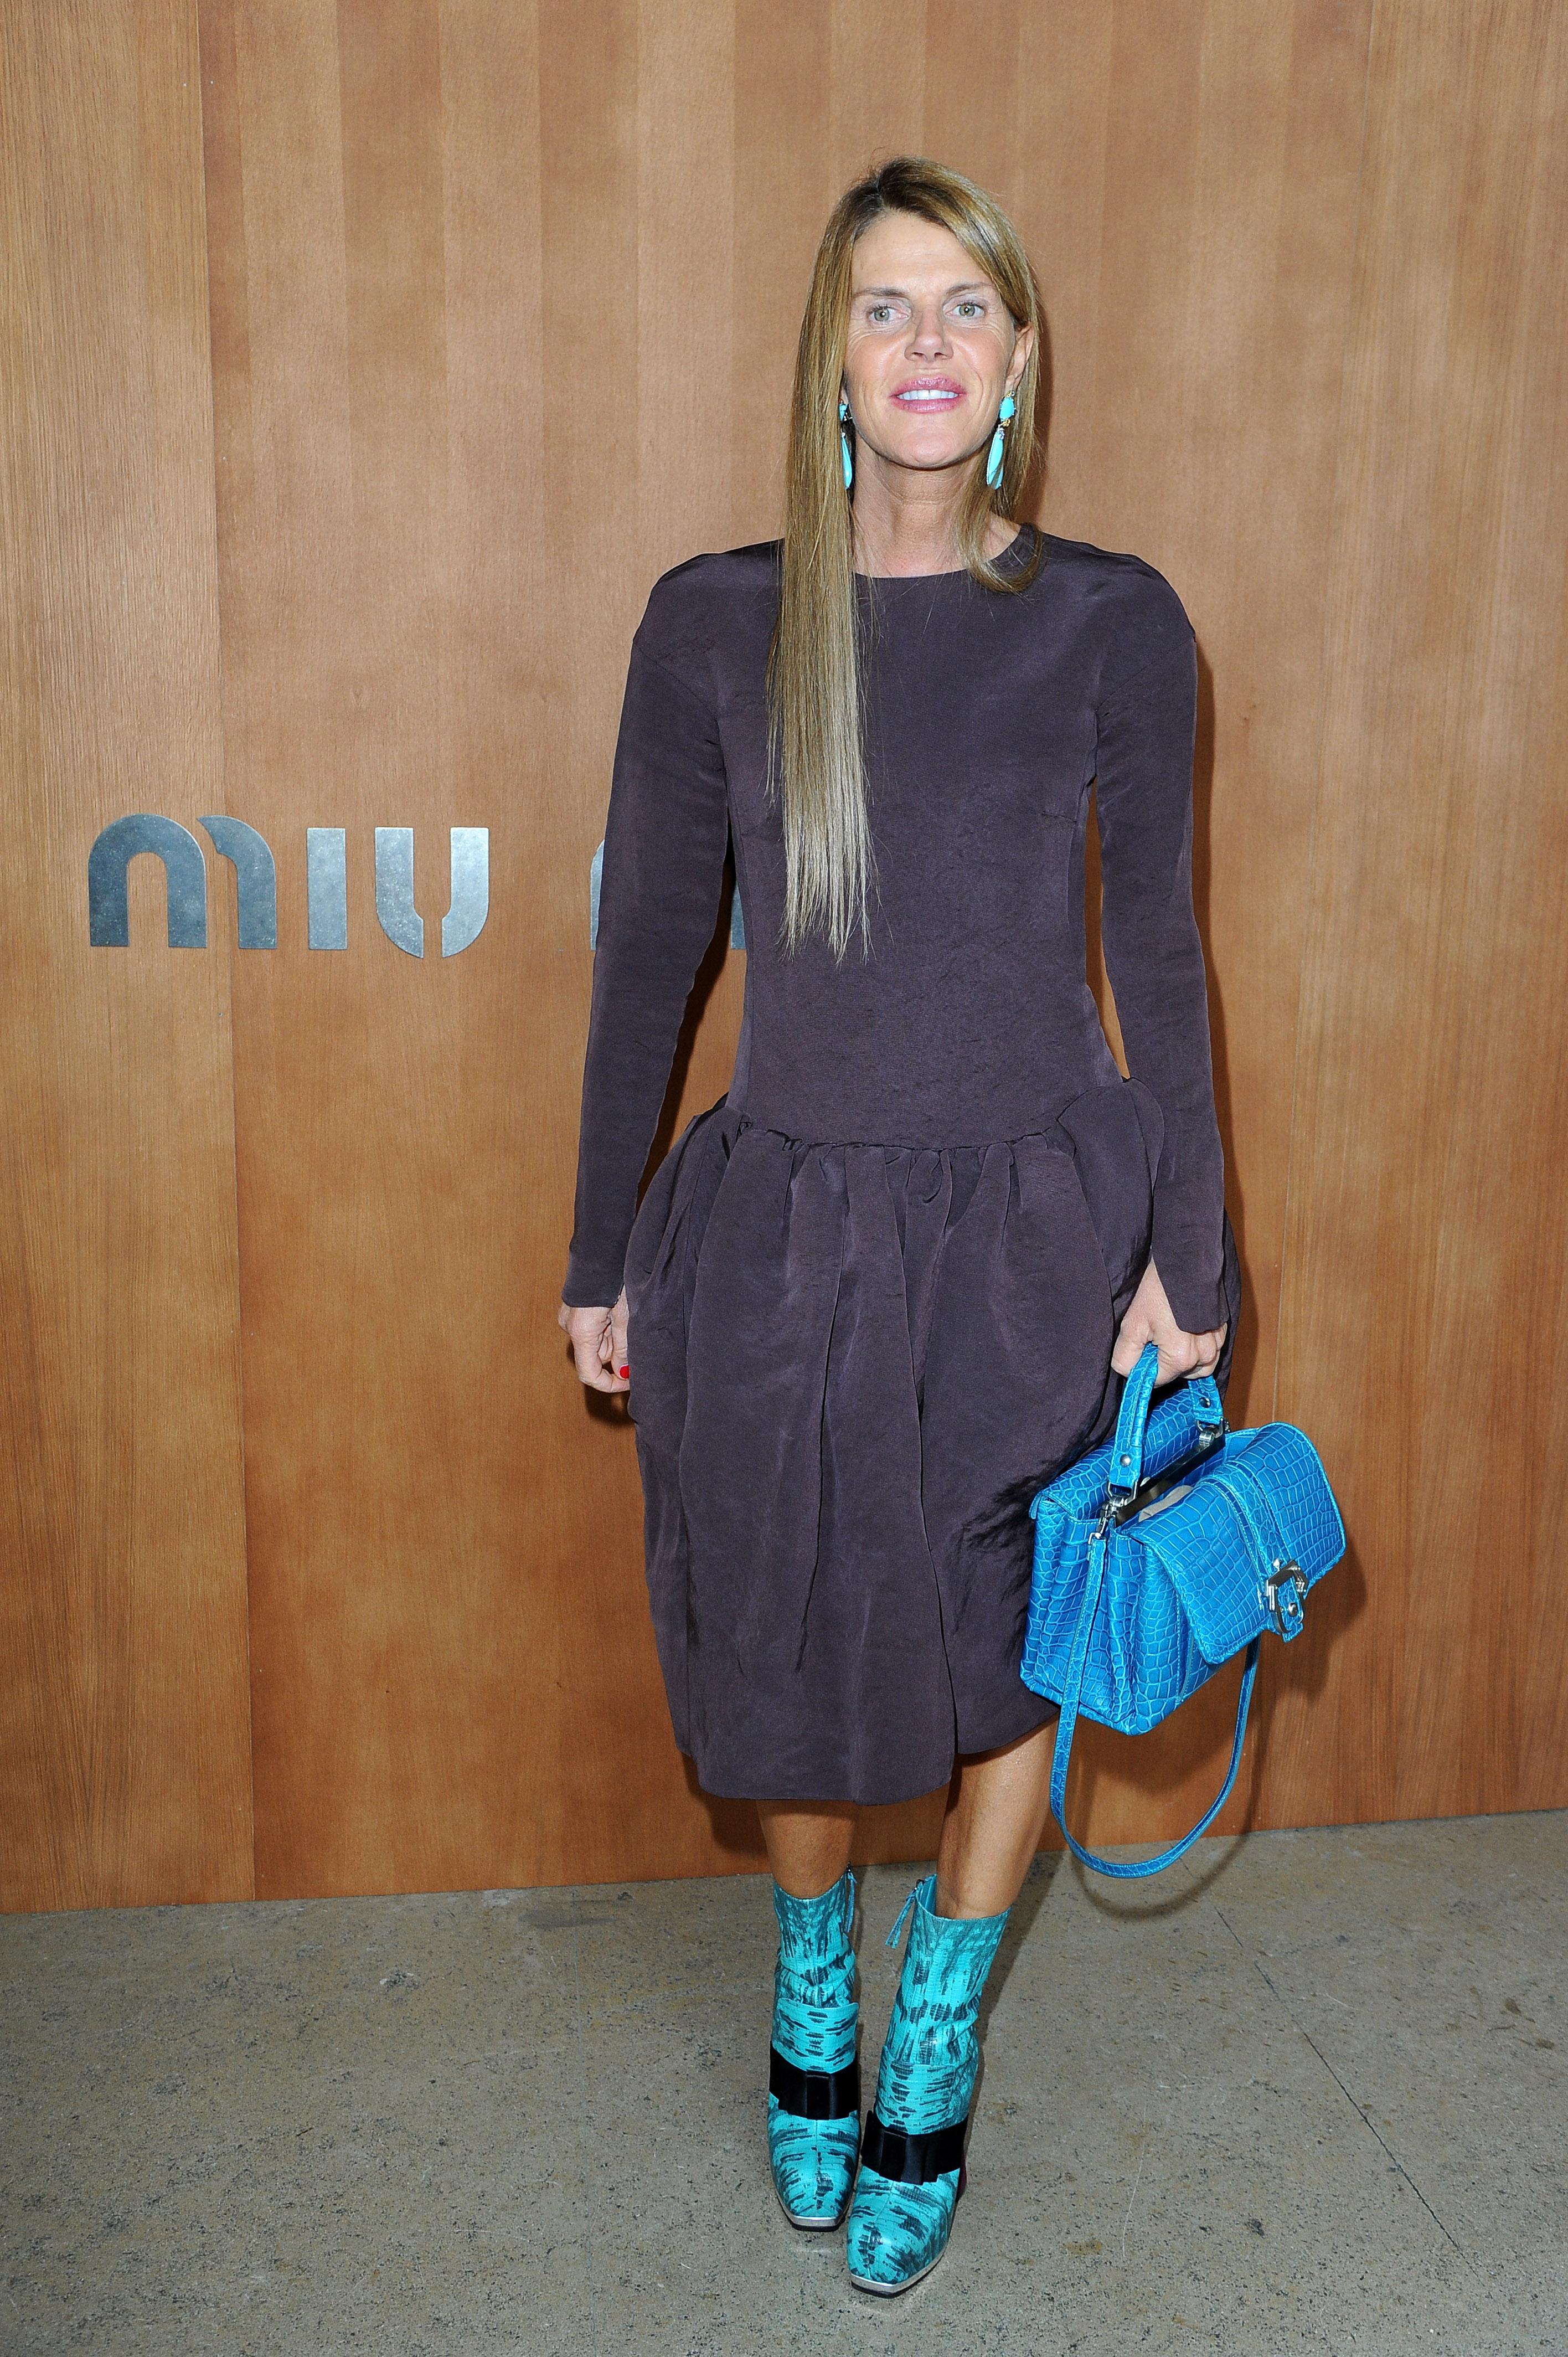 Anna Dello Russo's neutral-toned dress got the color pick-me-up it needed via bright blue accessories at Miu Miu.